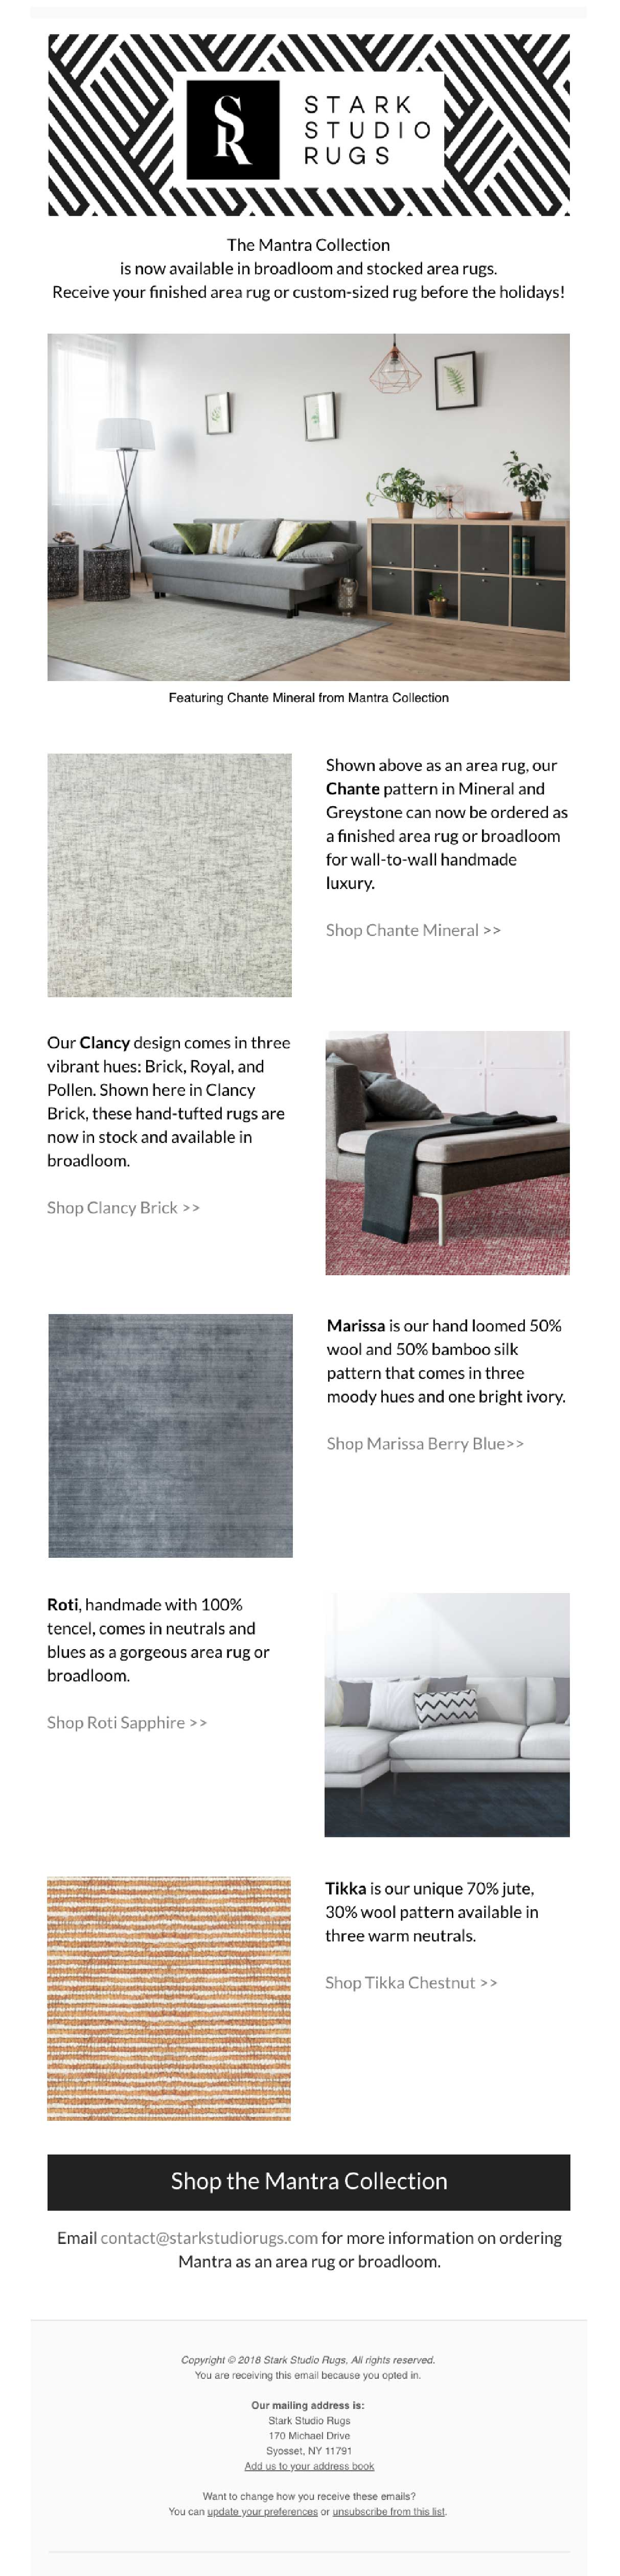 Stark Studio Rugs Post Now in Broadloom or Area Rug: Mantra Collection